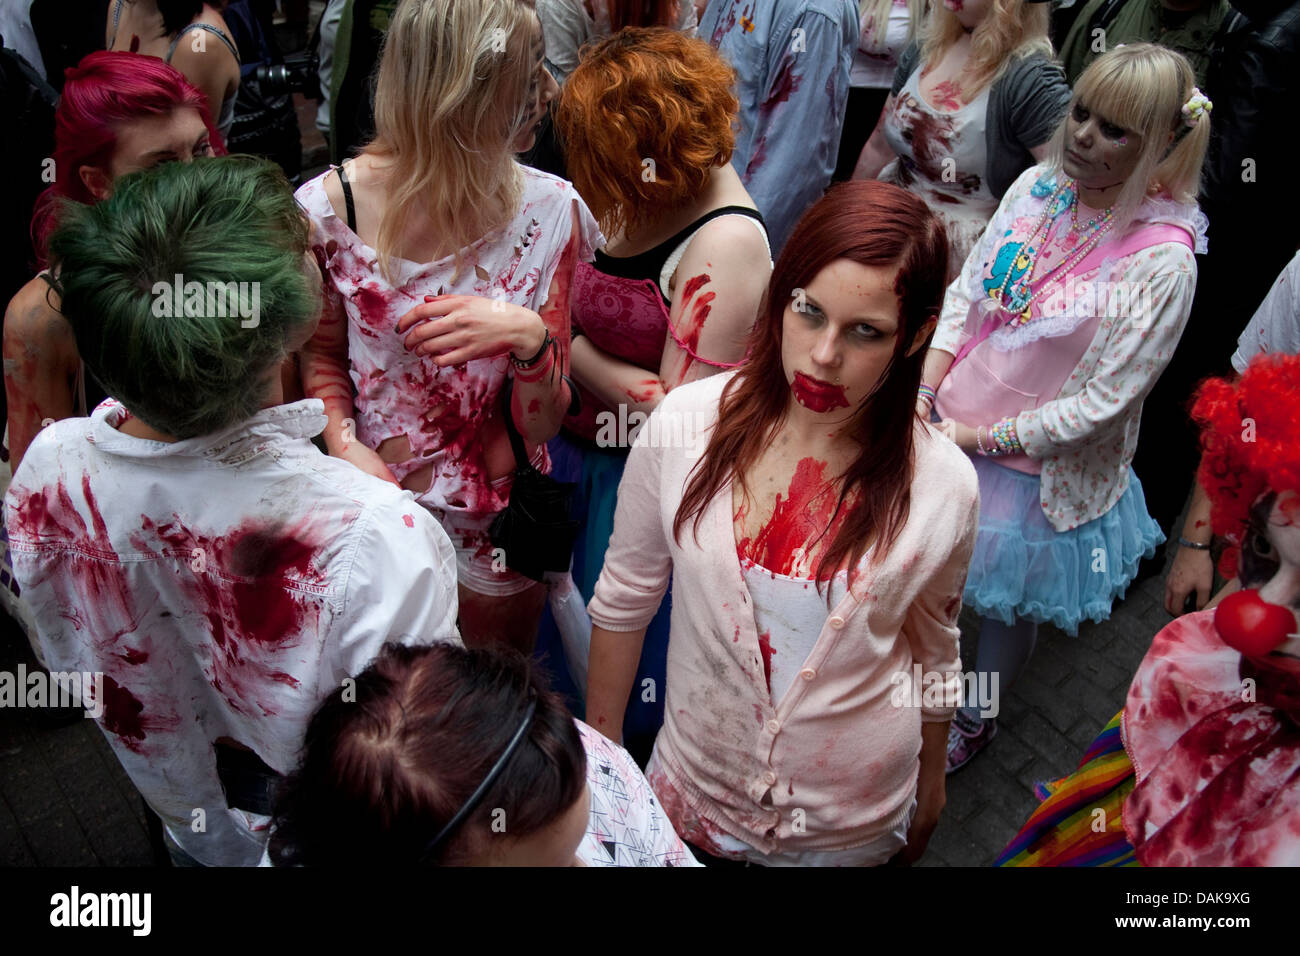 Zombies at Stockholm Zombie Walk 2011. This is Rebecka. - Stock Image